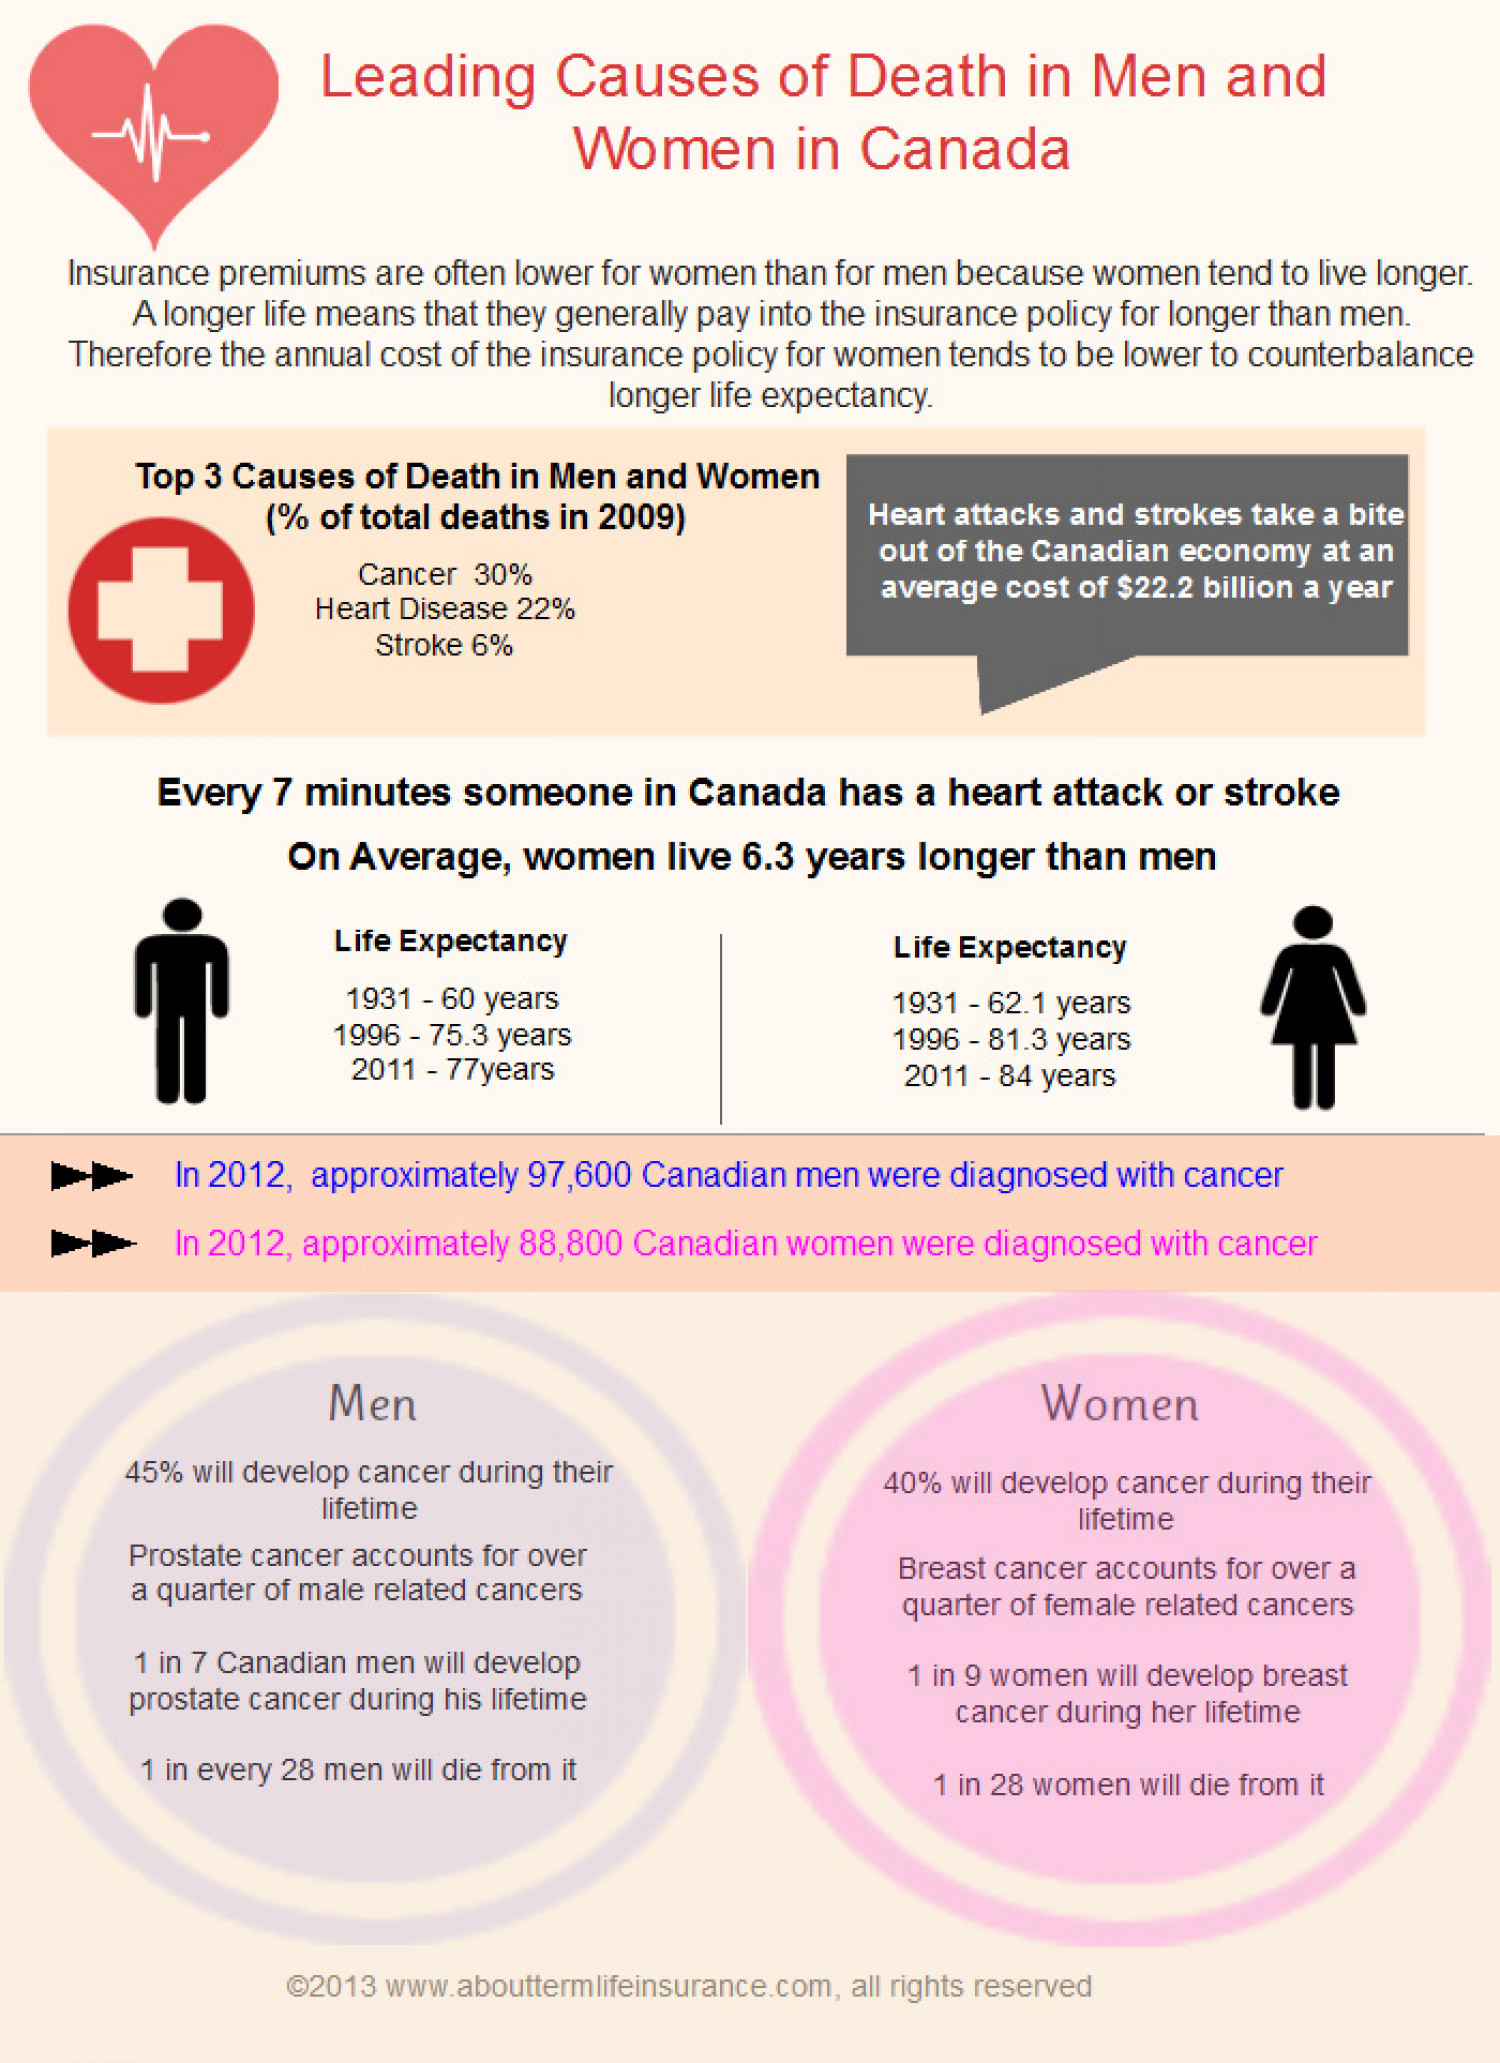 Leading Causes of Death in Men and Women Infographic